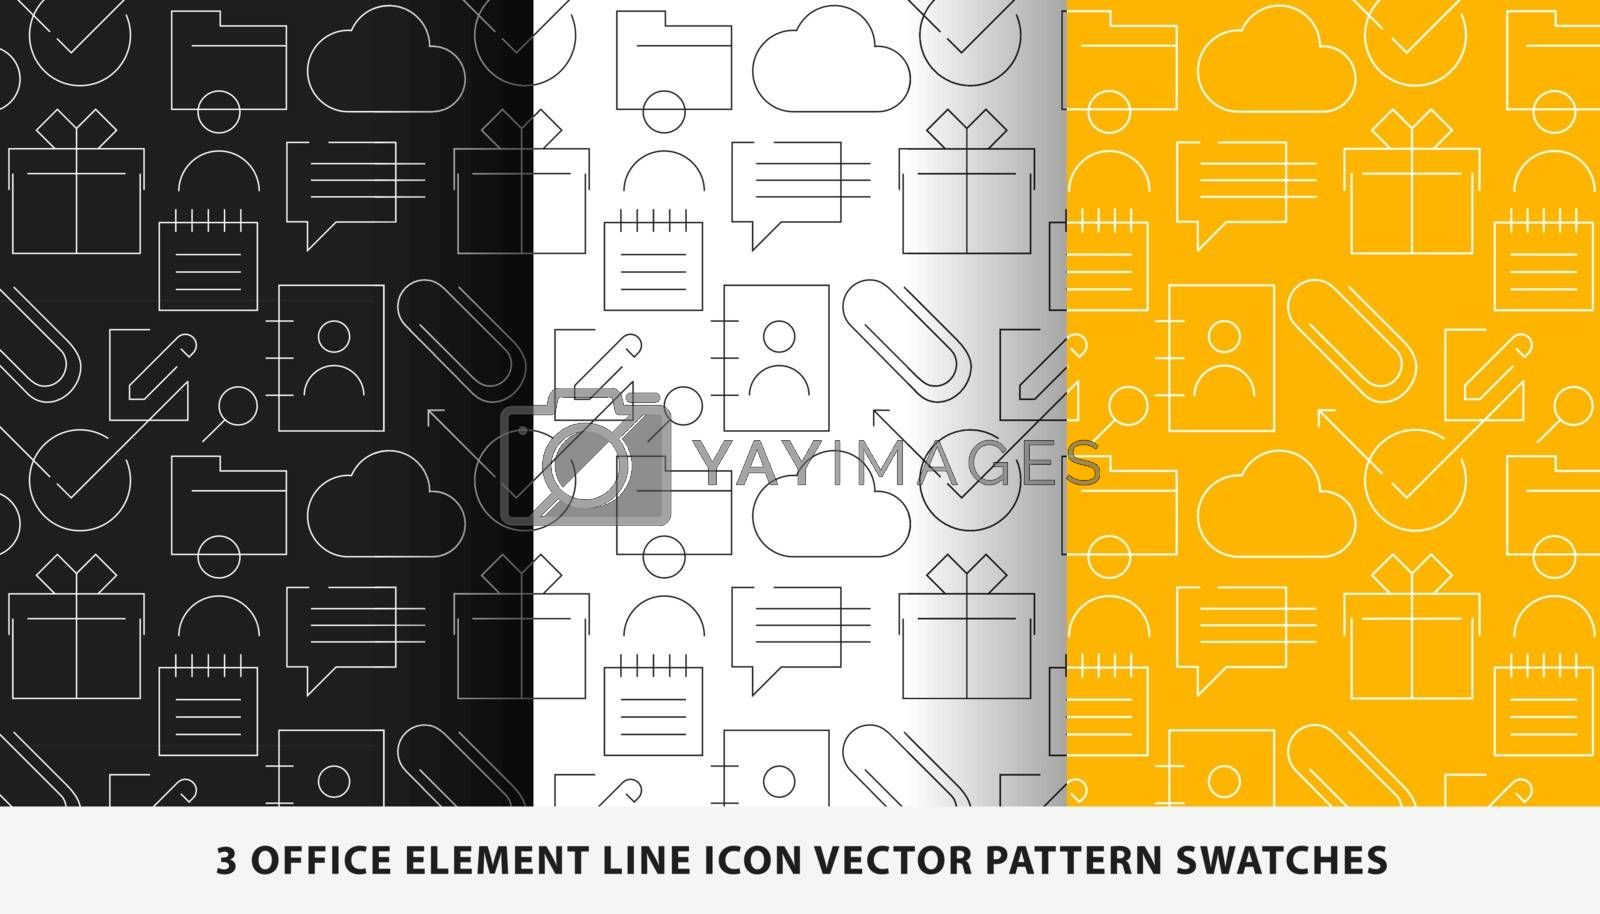 Office element line icon vector pattern swatches